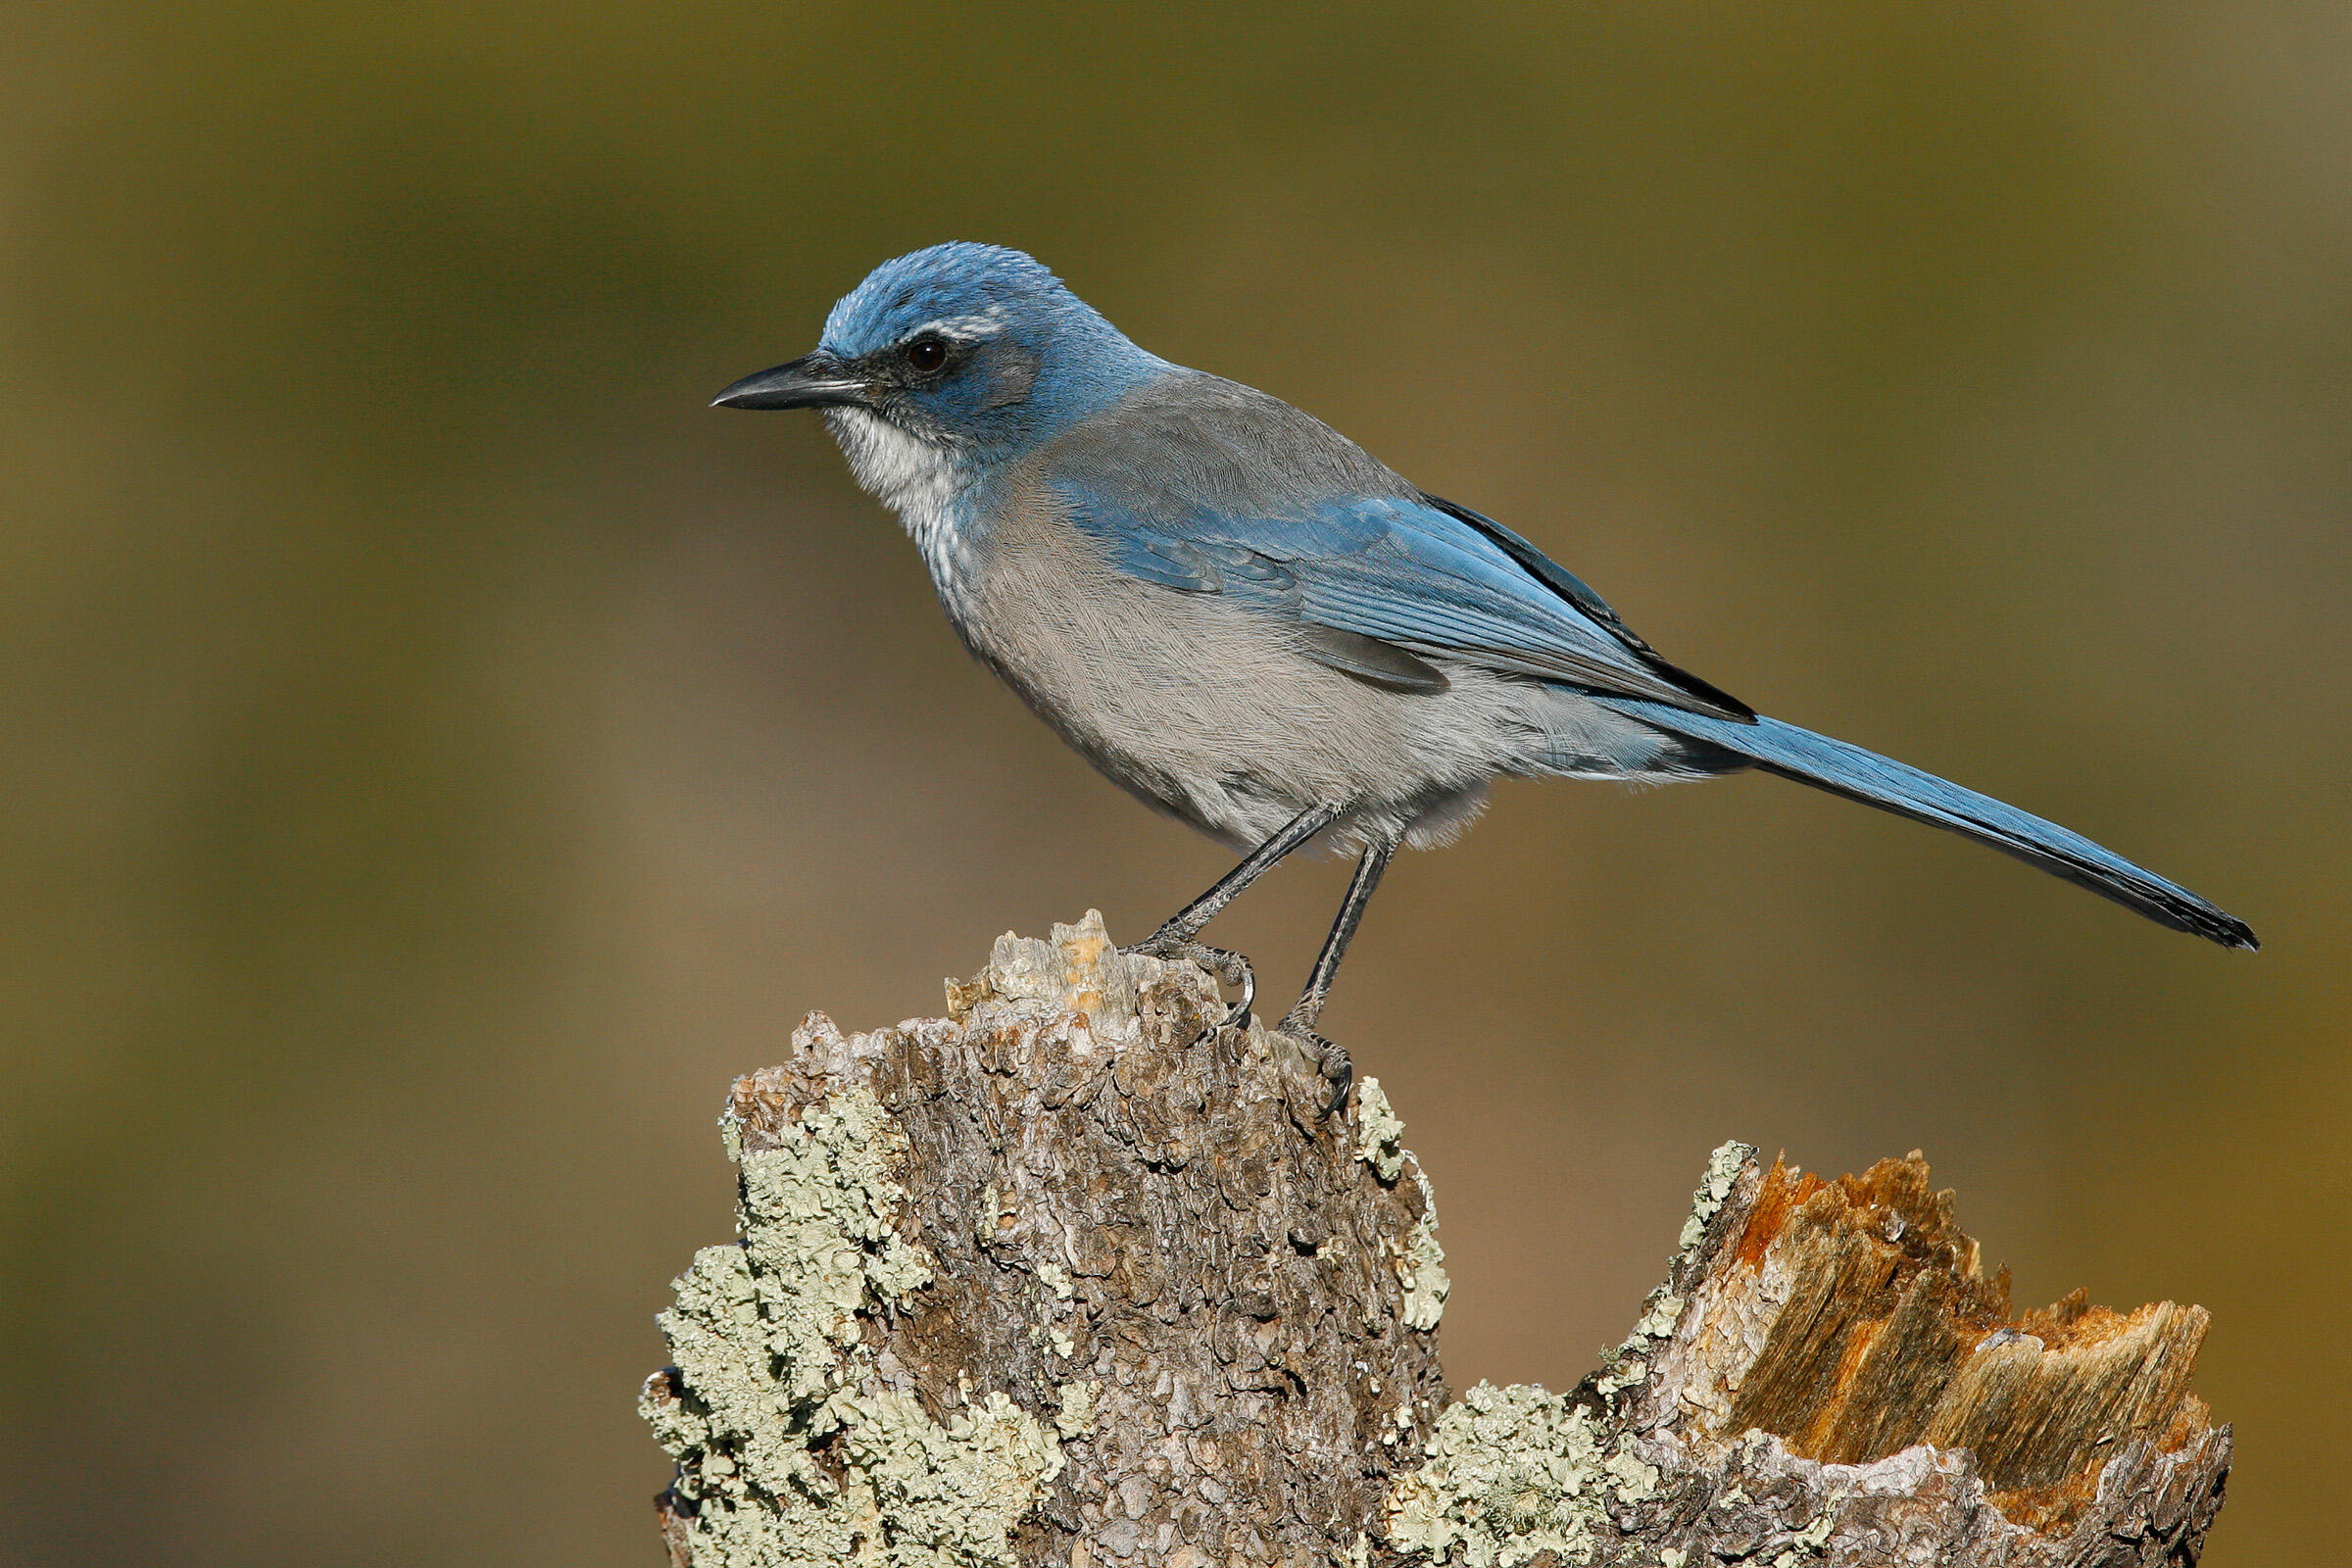 3be38eccad1 Woodhouse's Scrub-Jay | Audubon Field Guide